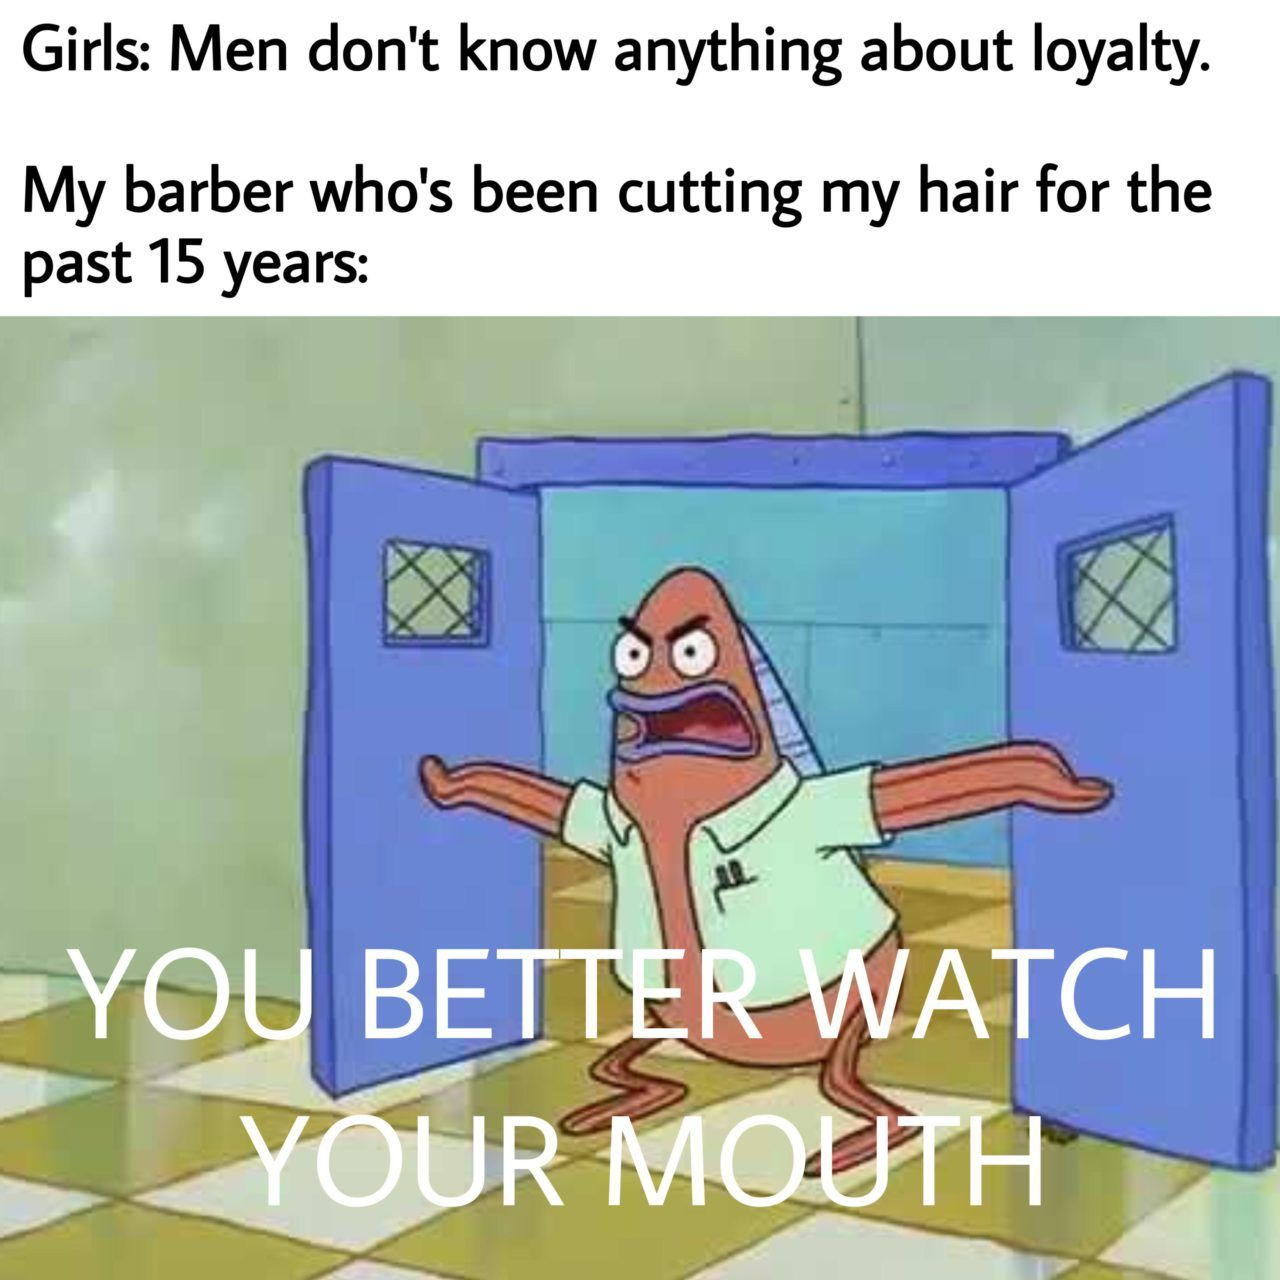 My barber knows